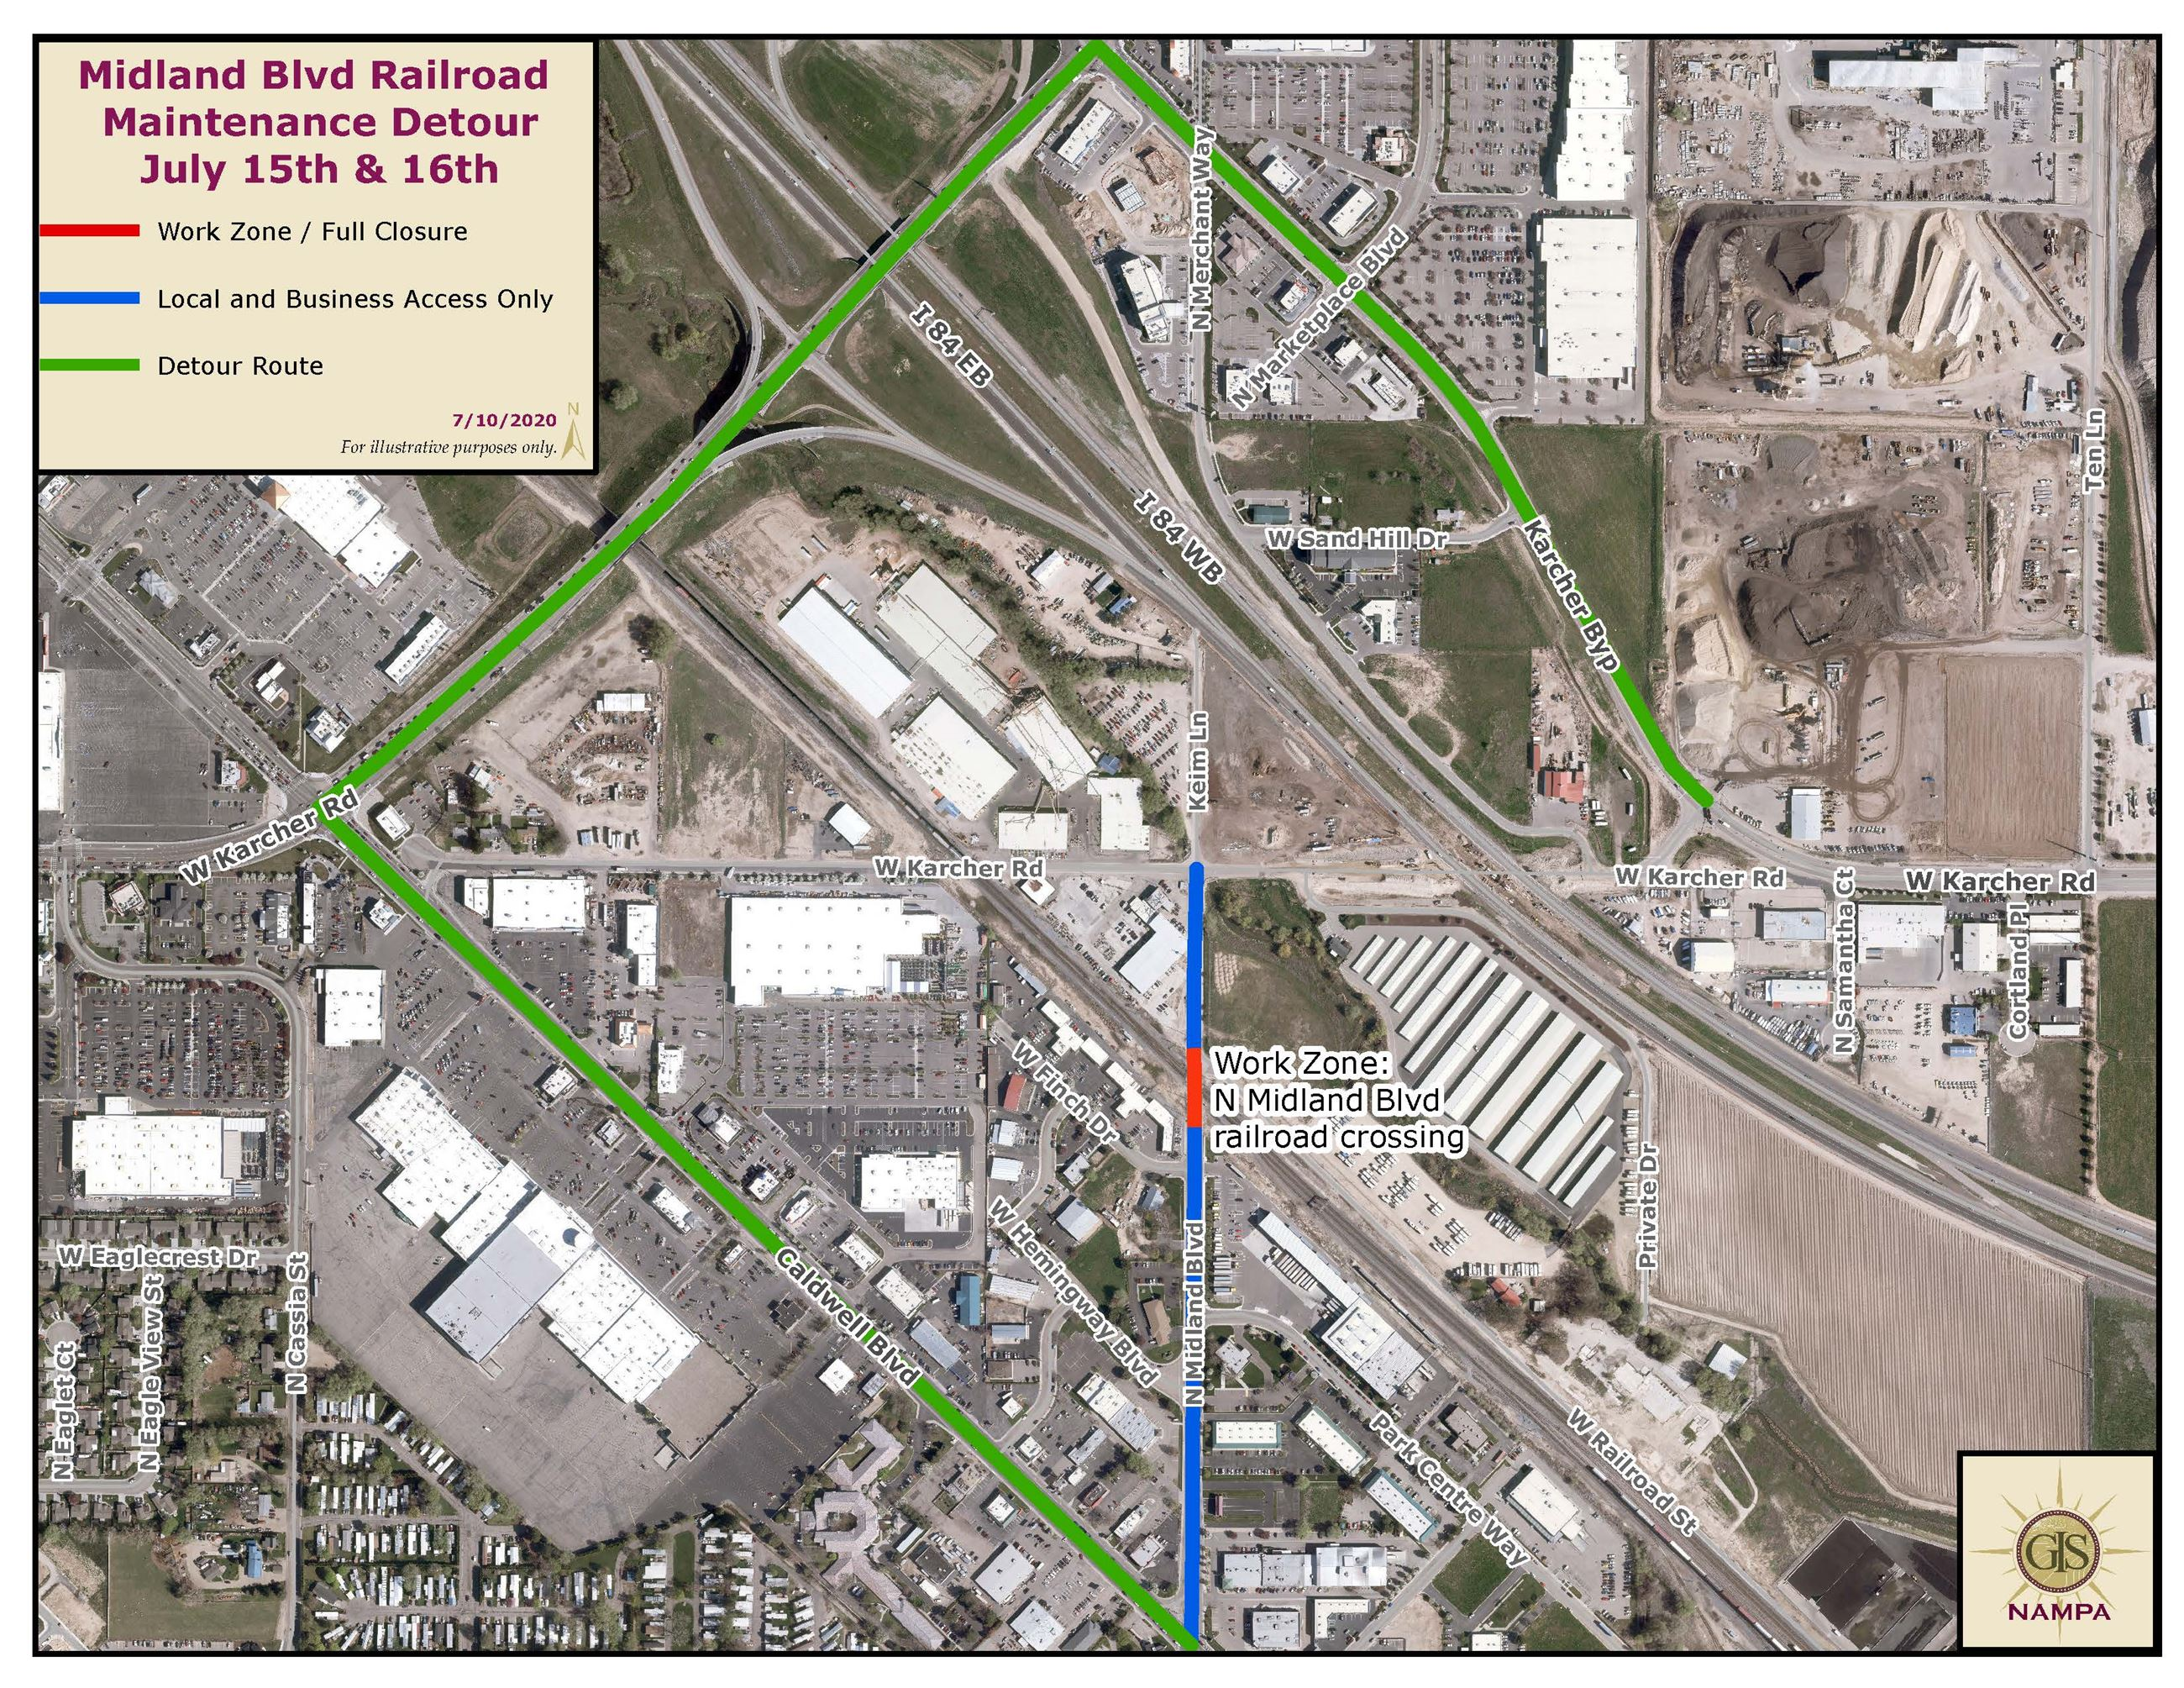 Railroad Related Maintenance to close N Midland Blvd July 15-16